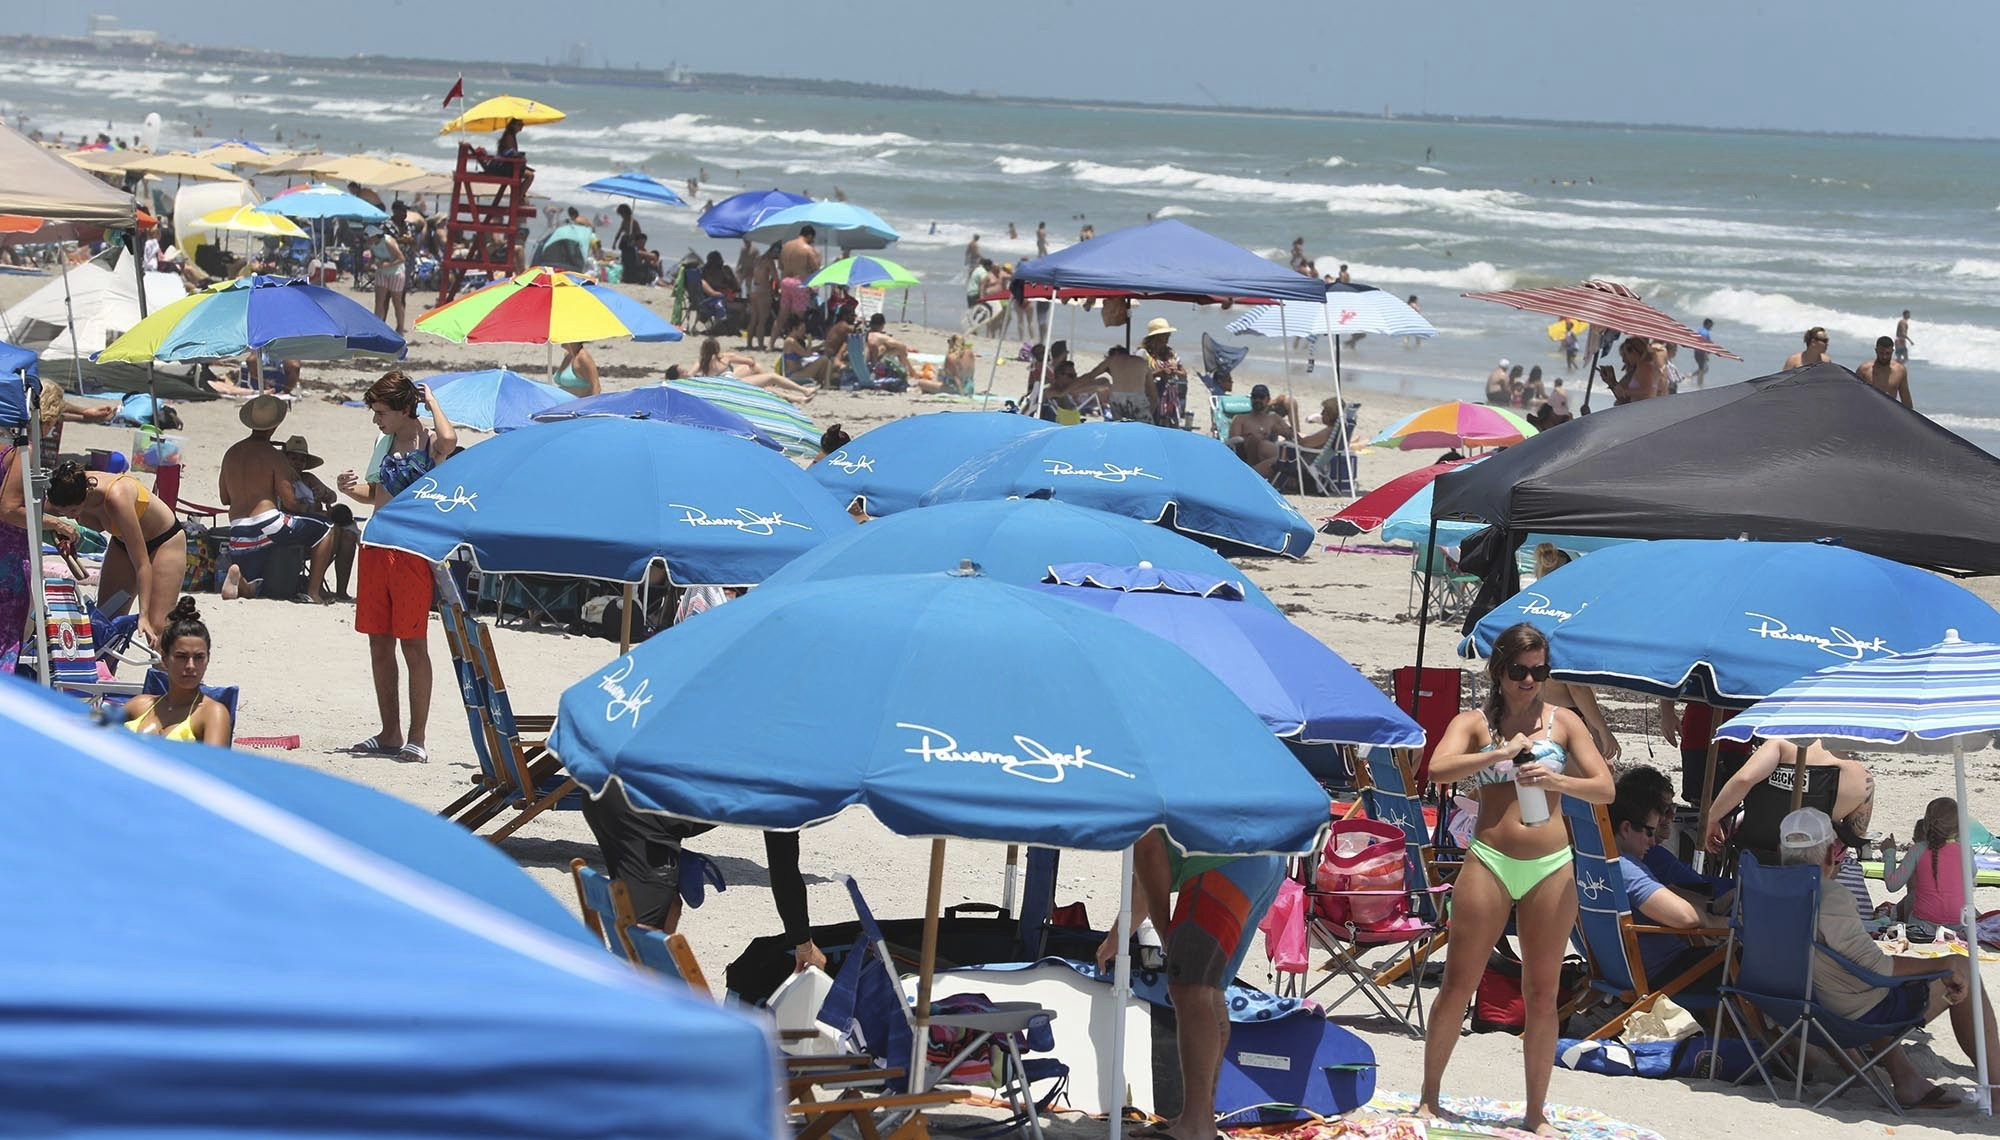 Cocoa Beach, Fla., is packed with Memorial Day beachgoers on Saturday, May 23, 202 The beaches are open for business again during the coronavirus epidemic.